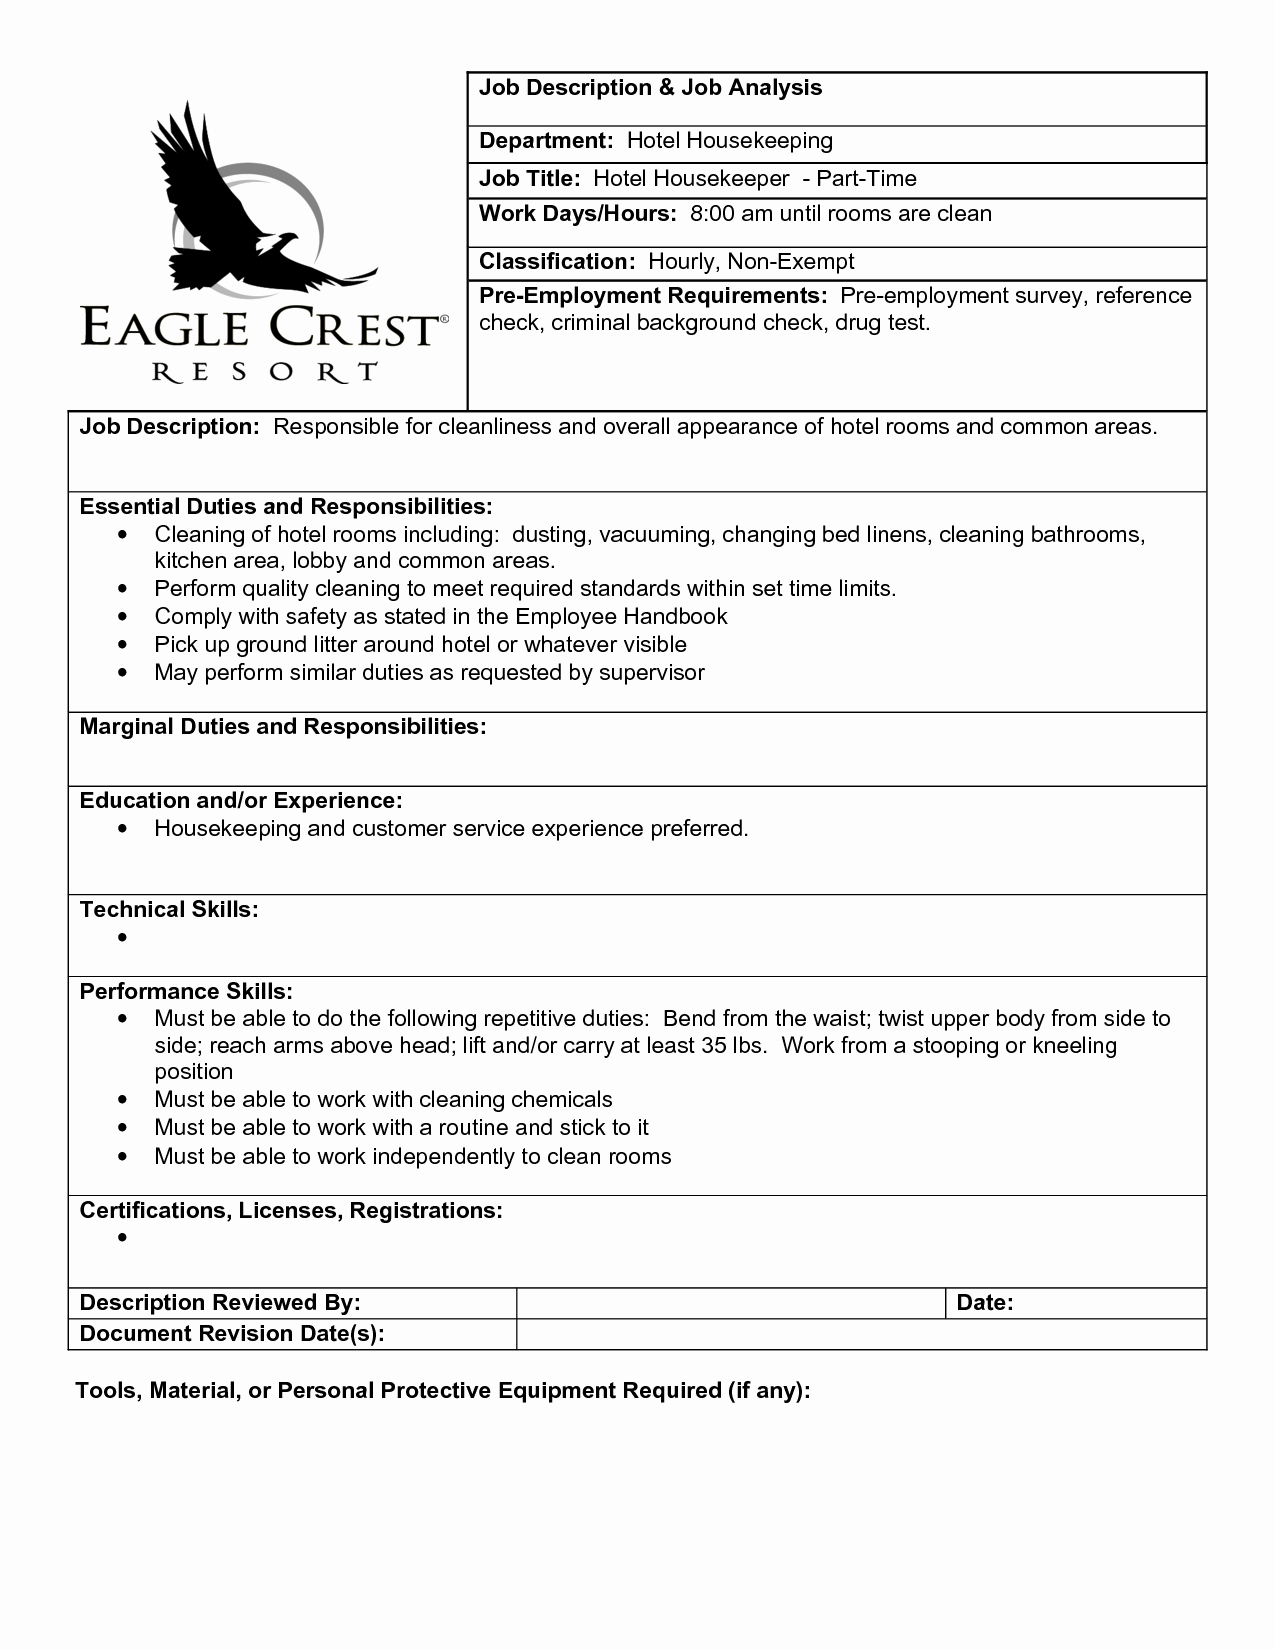 Hotel Housekeeping Job Description for Resume Best Of Best S Of Hotel Housekeeping Duties Hotel